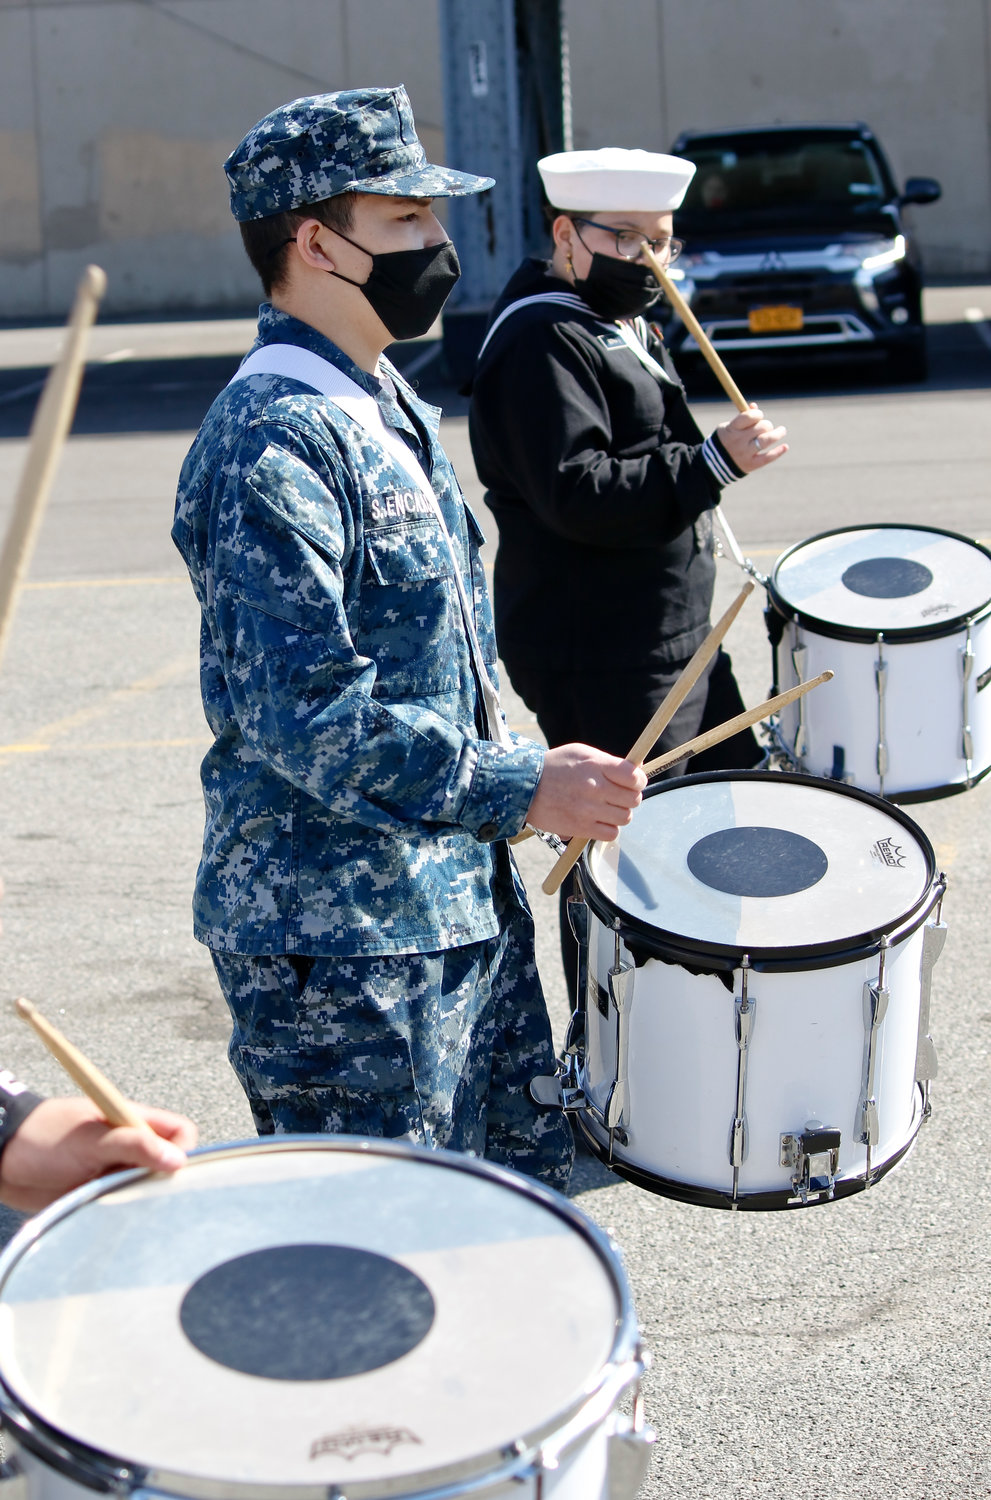 Sebastian Encalada and Allison Bepnate helped perform band drills with the corps.